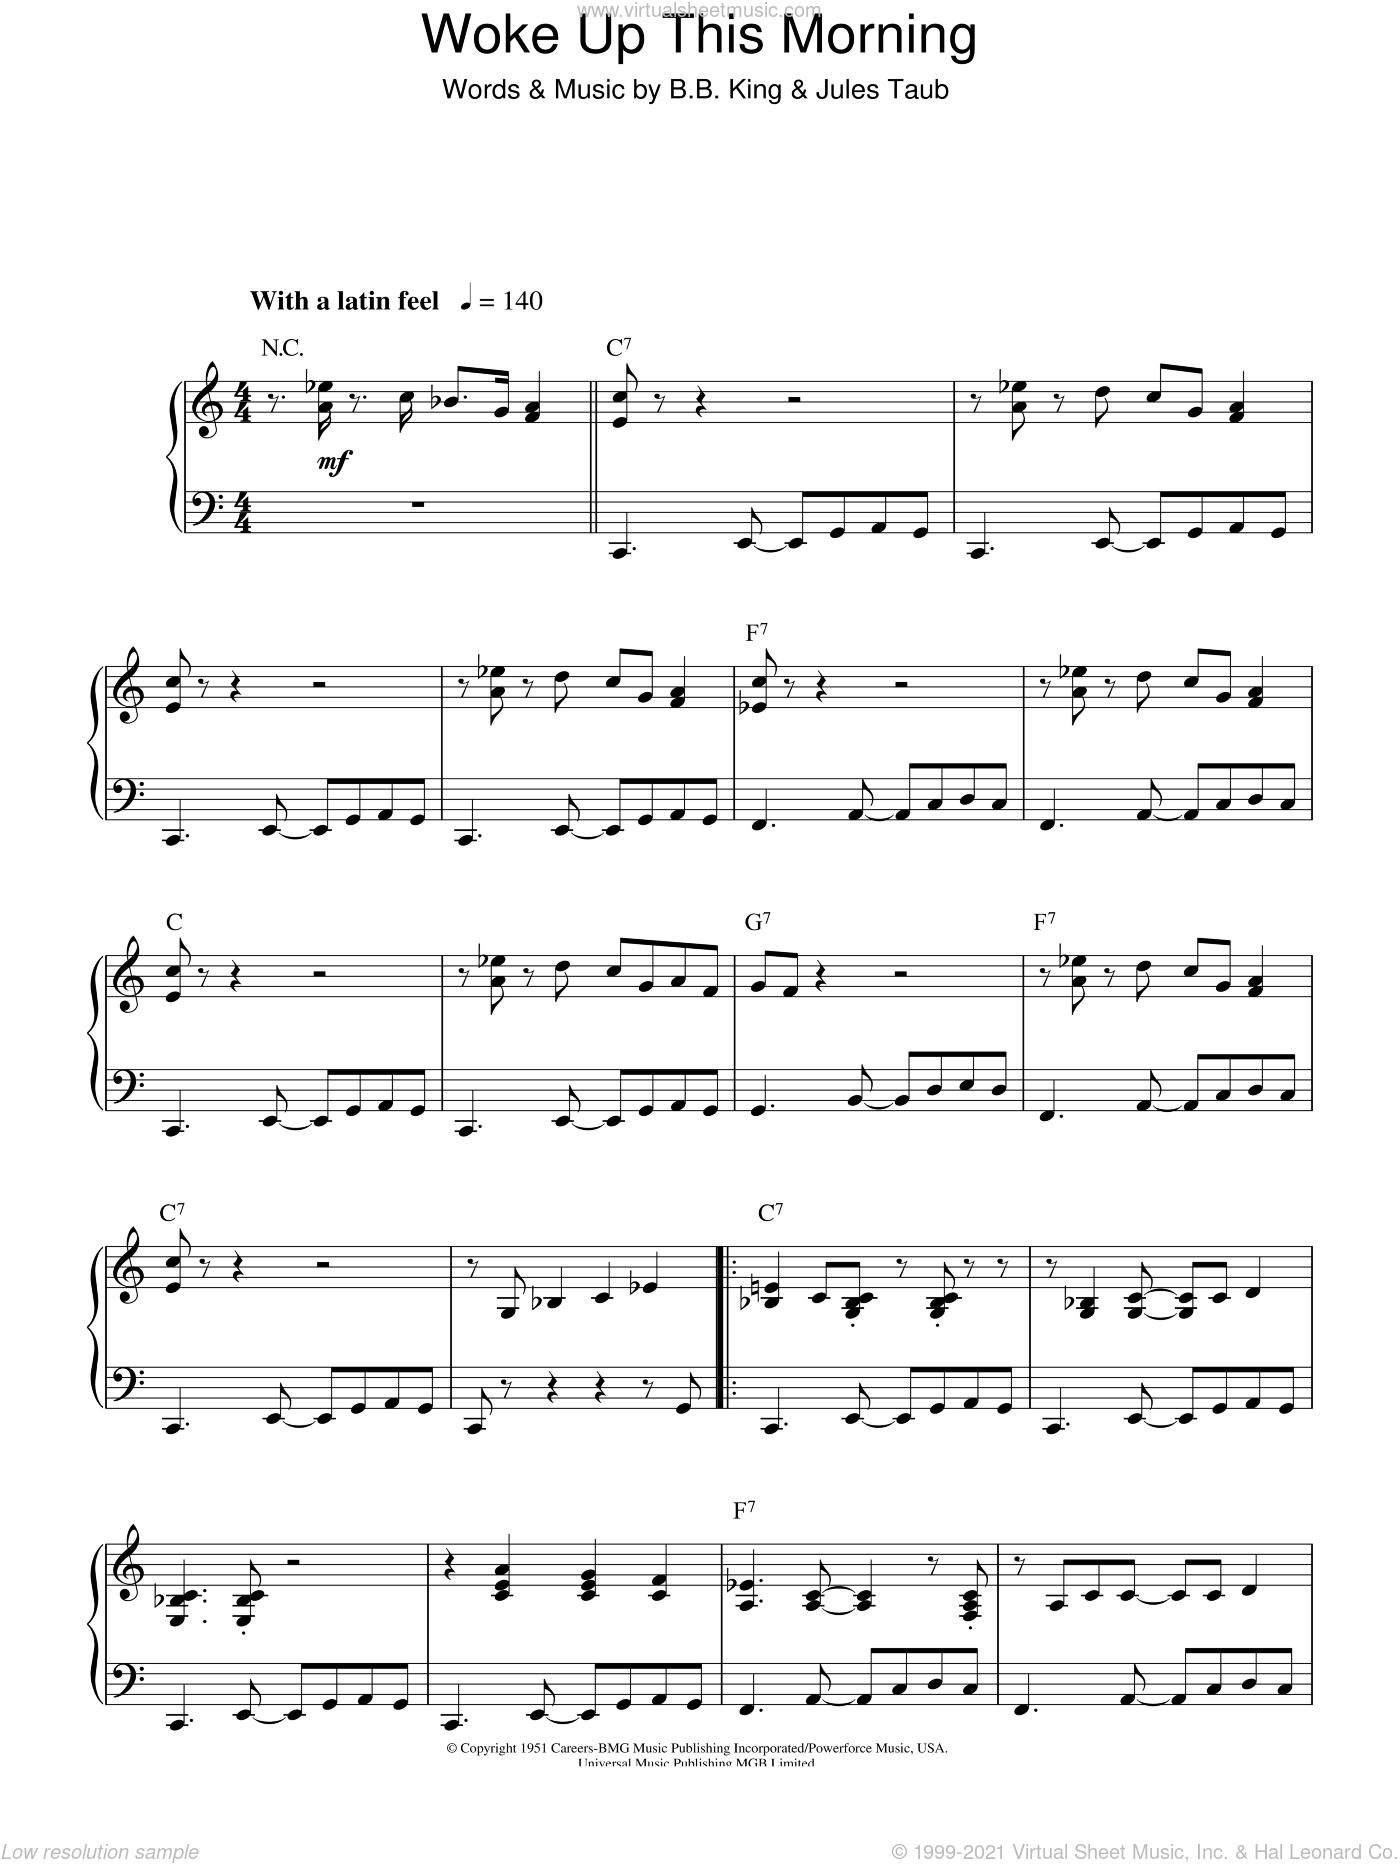 Woke Up This Morning sheet music for piano solo by B.B. King and Jules Taub, intermediate skill level